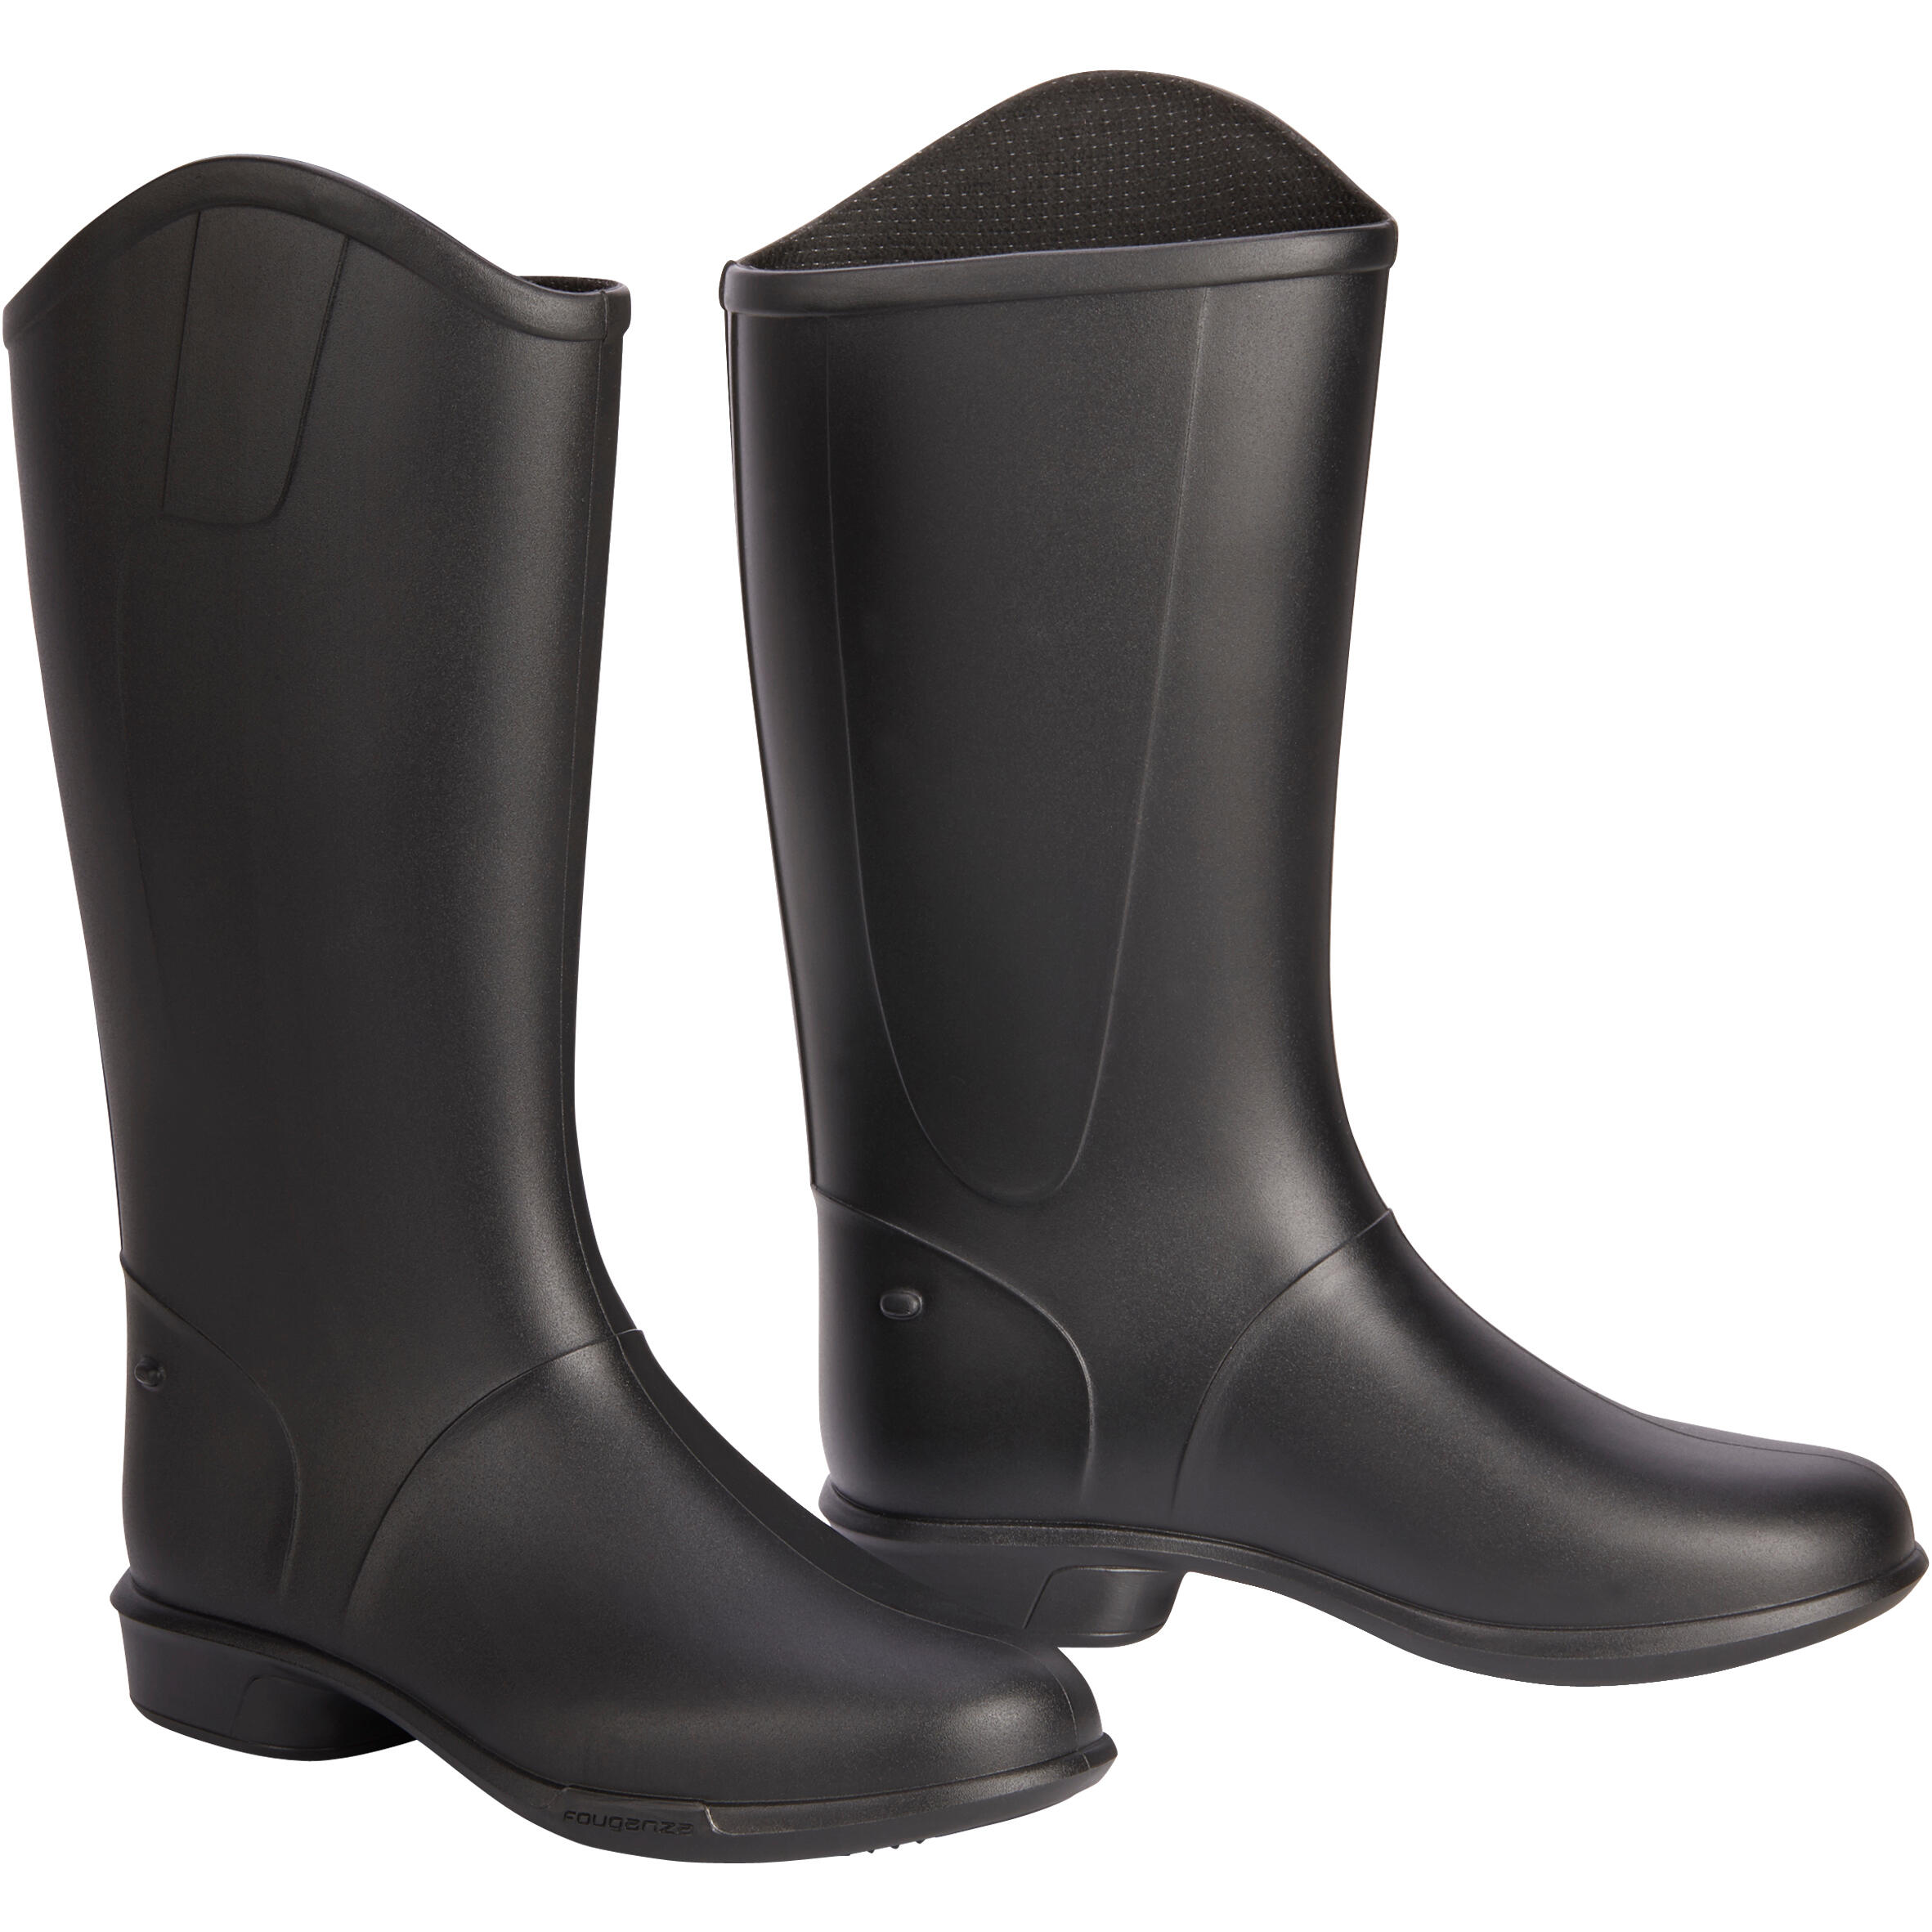 Schooling Kids' Horse Riding Boots - Black